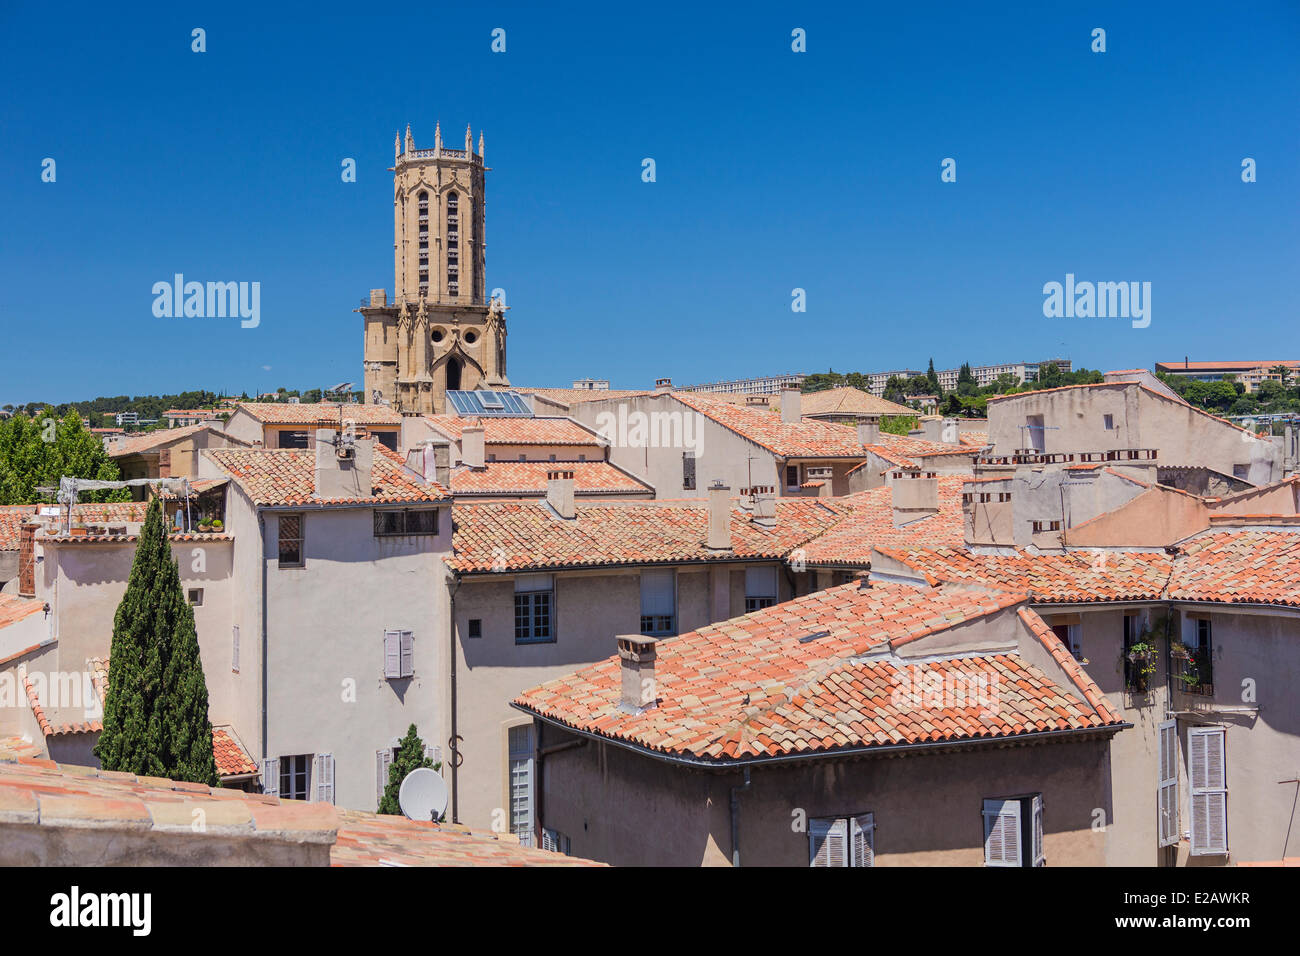 France, Bouches du Rhone, Aix en Provence, the roofs and cathedral Saint Sauveur - Stock Image